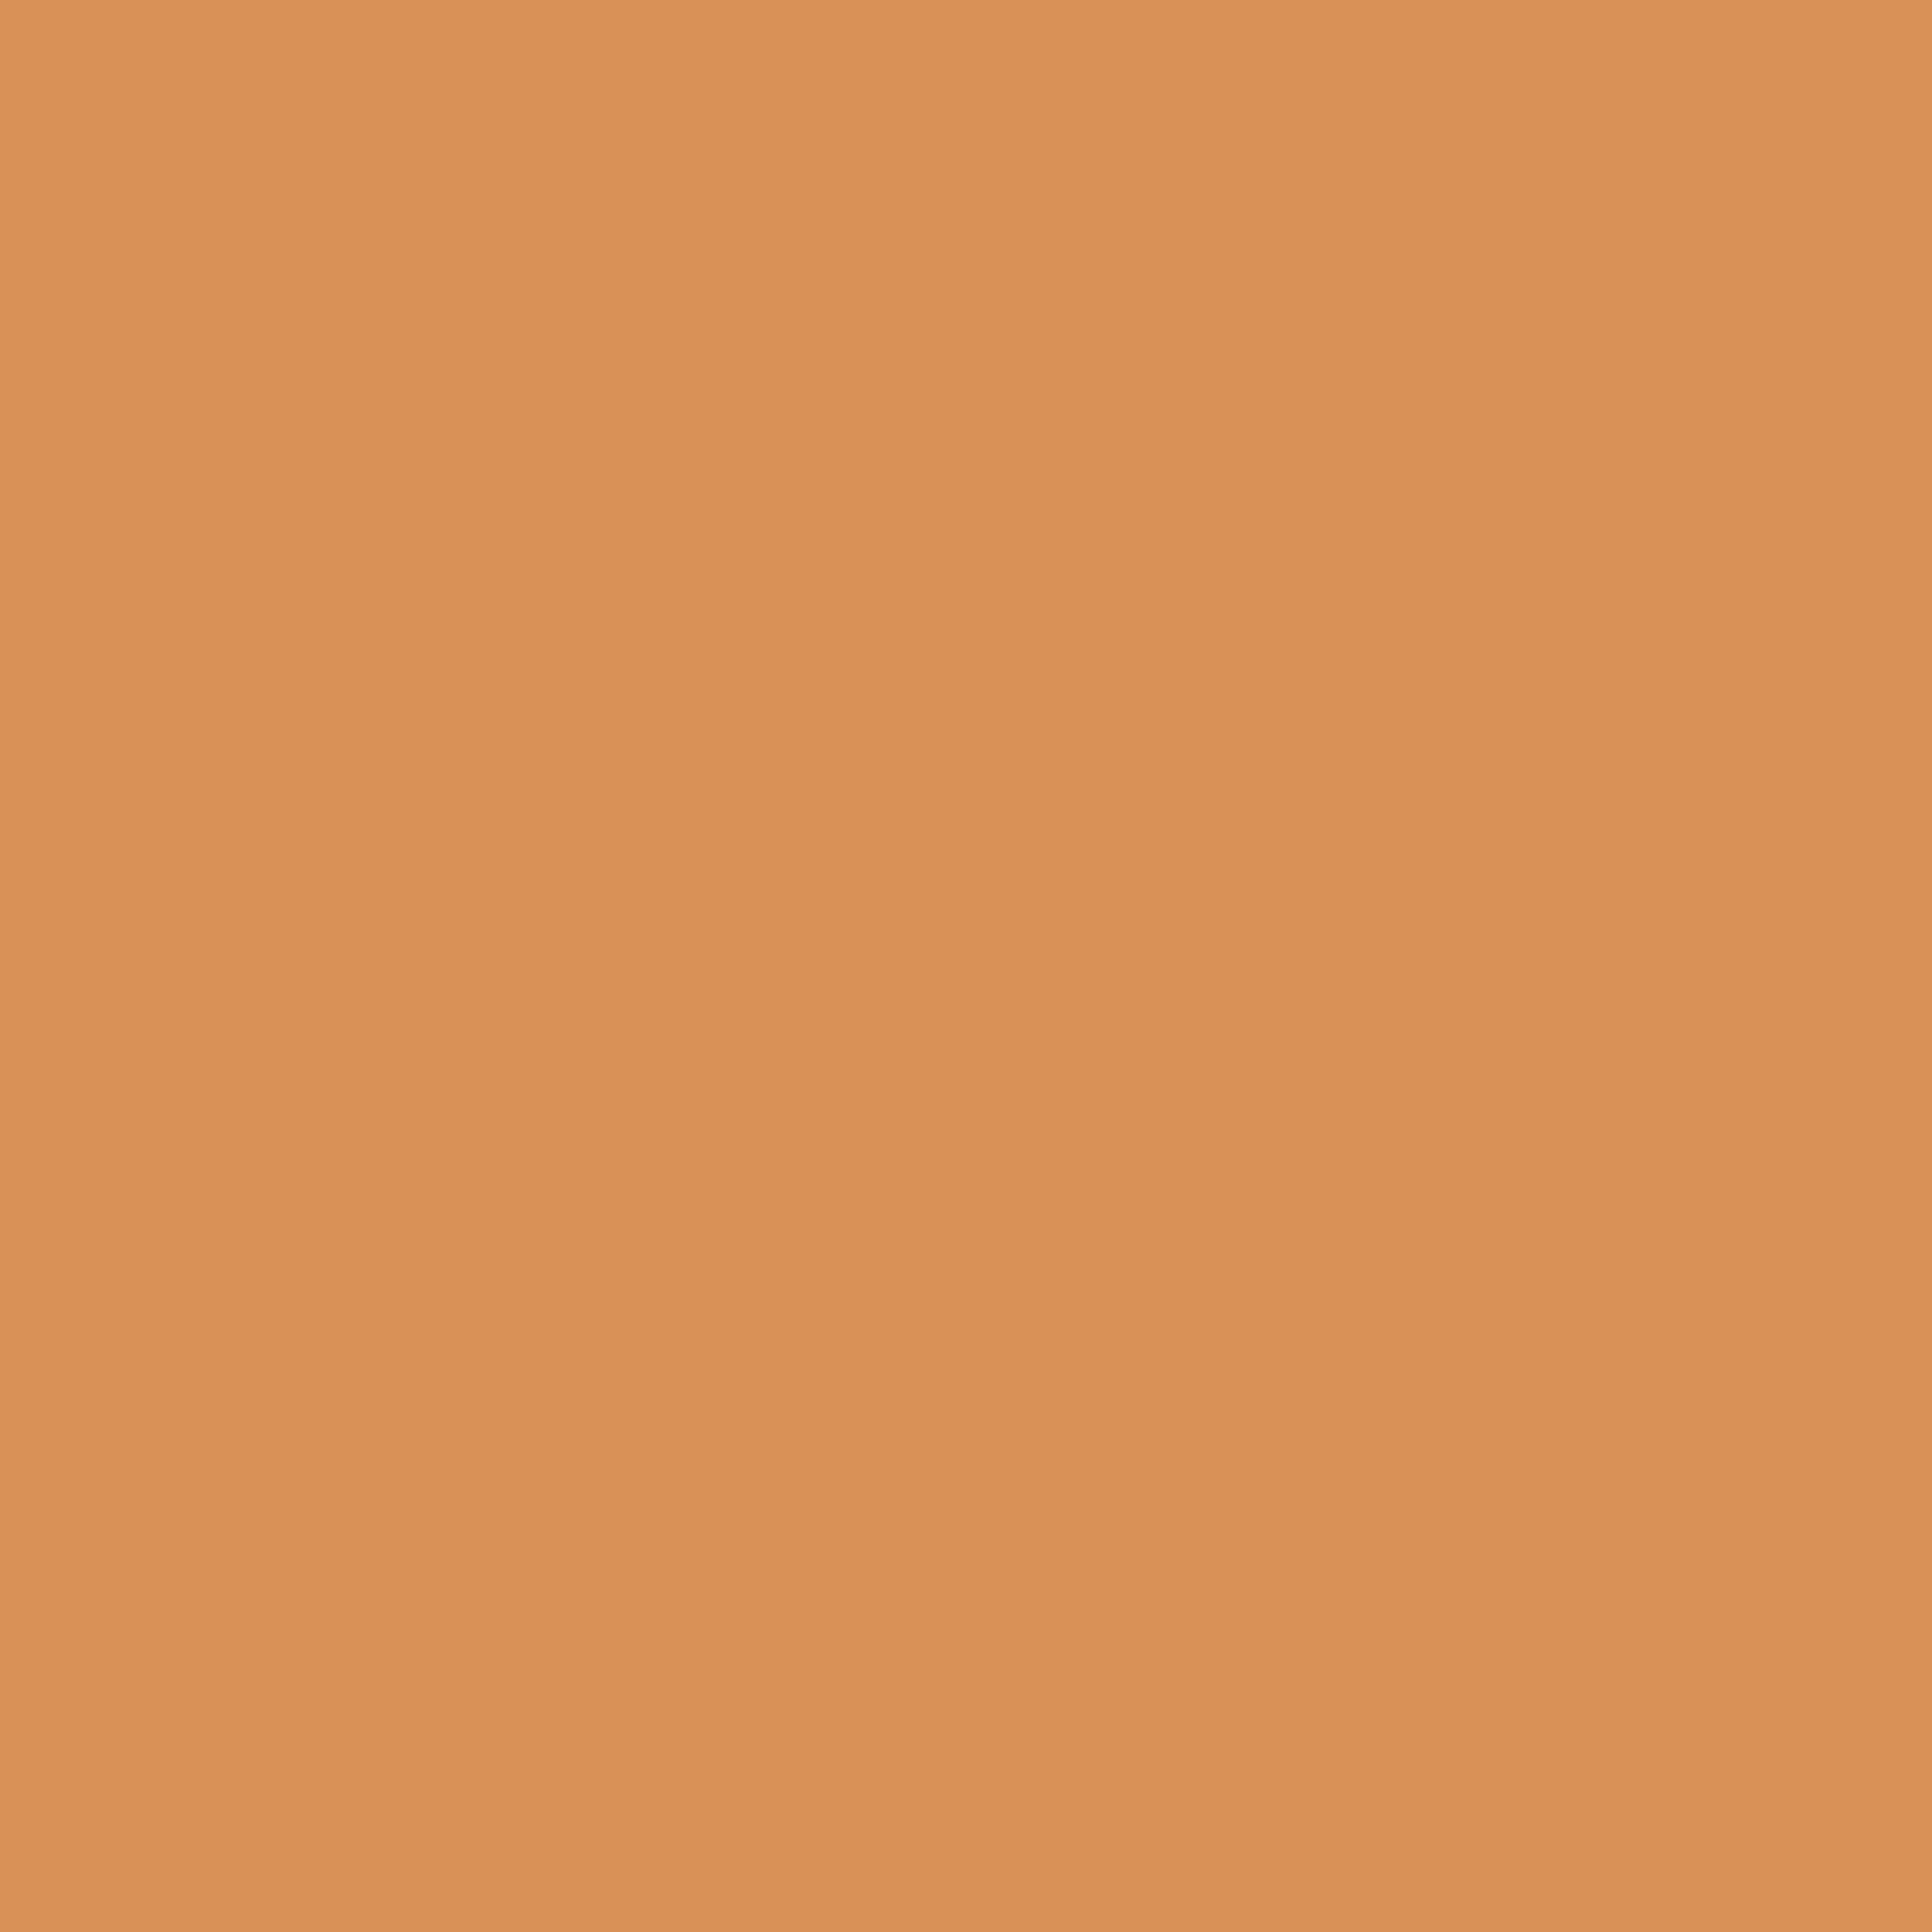 2048x2048 Persian Orange Solid Color Background